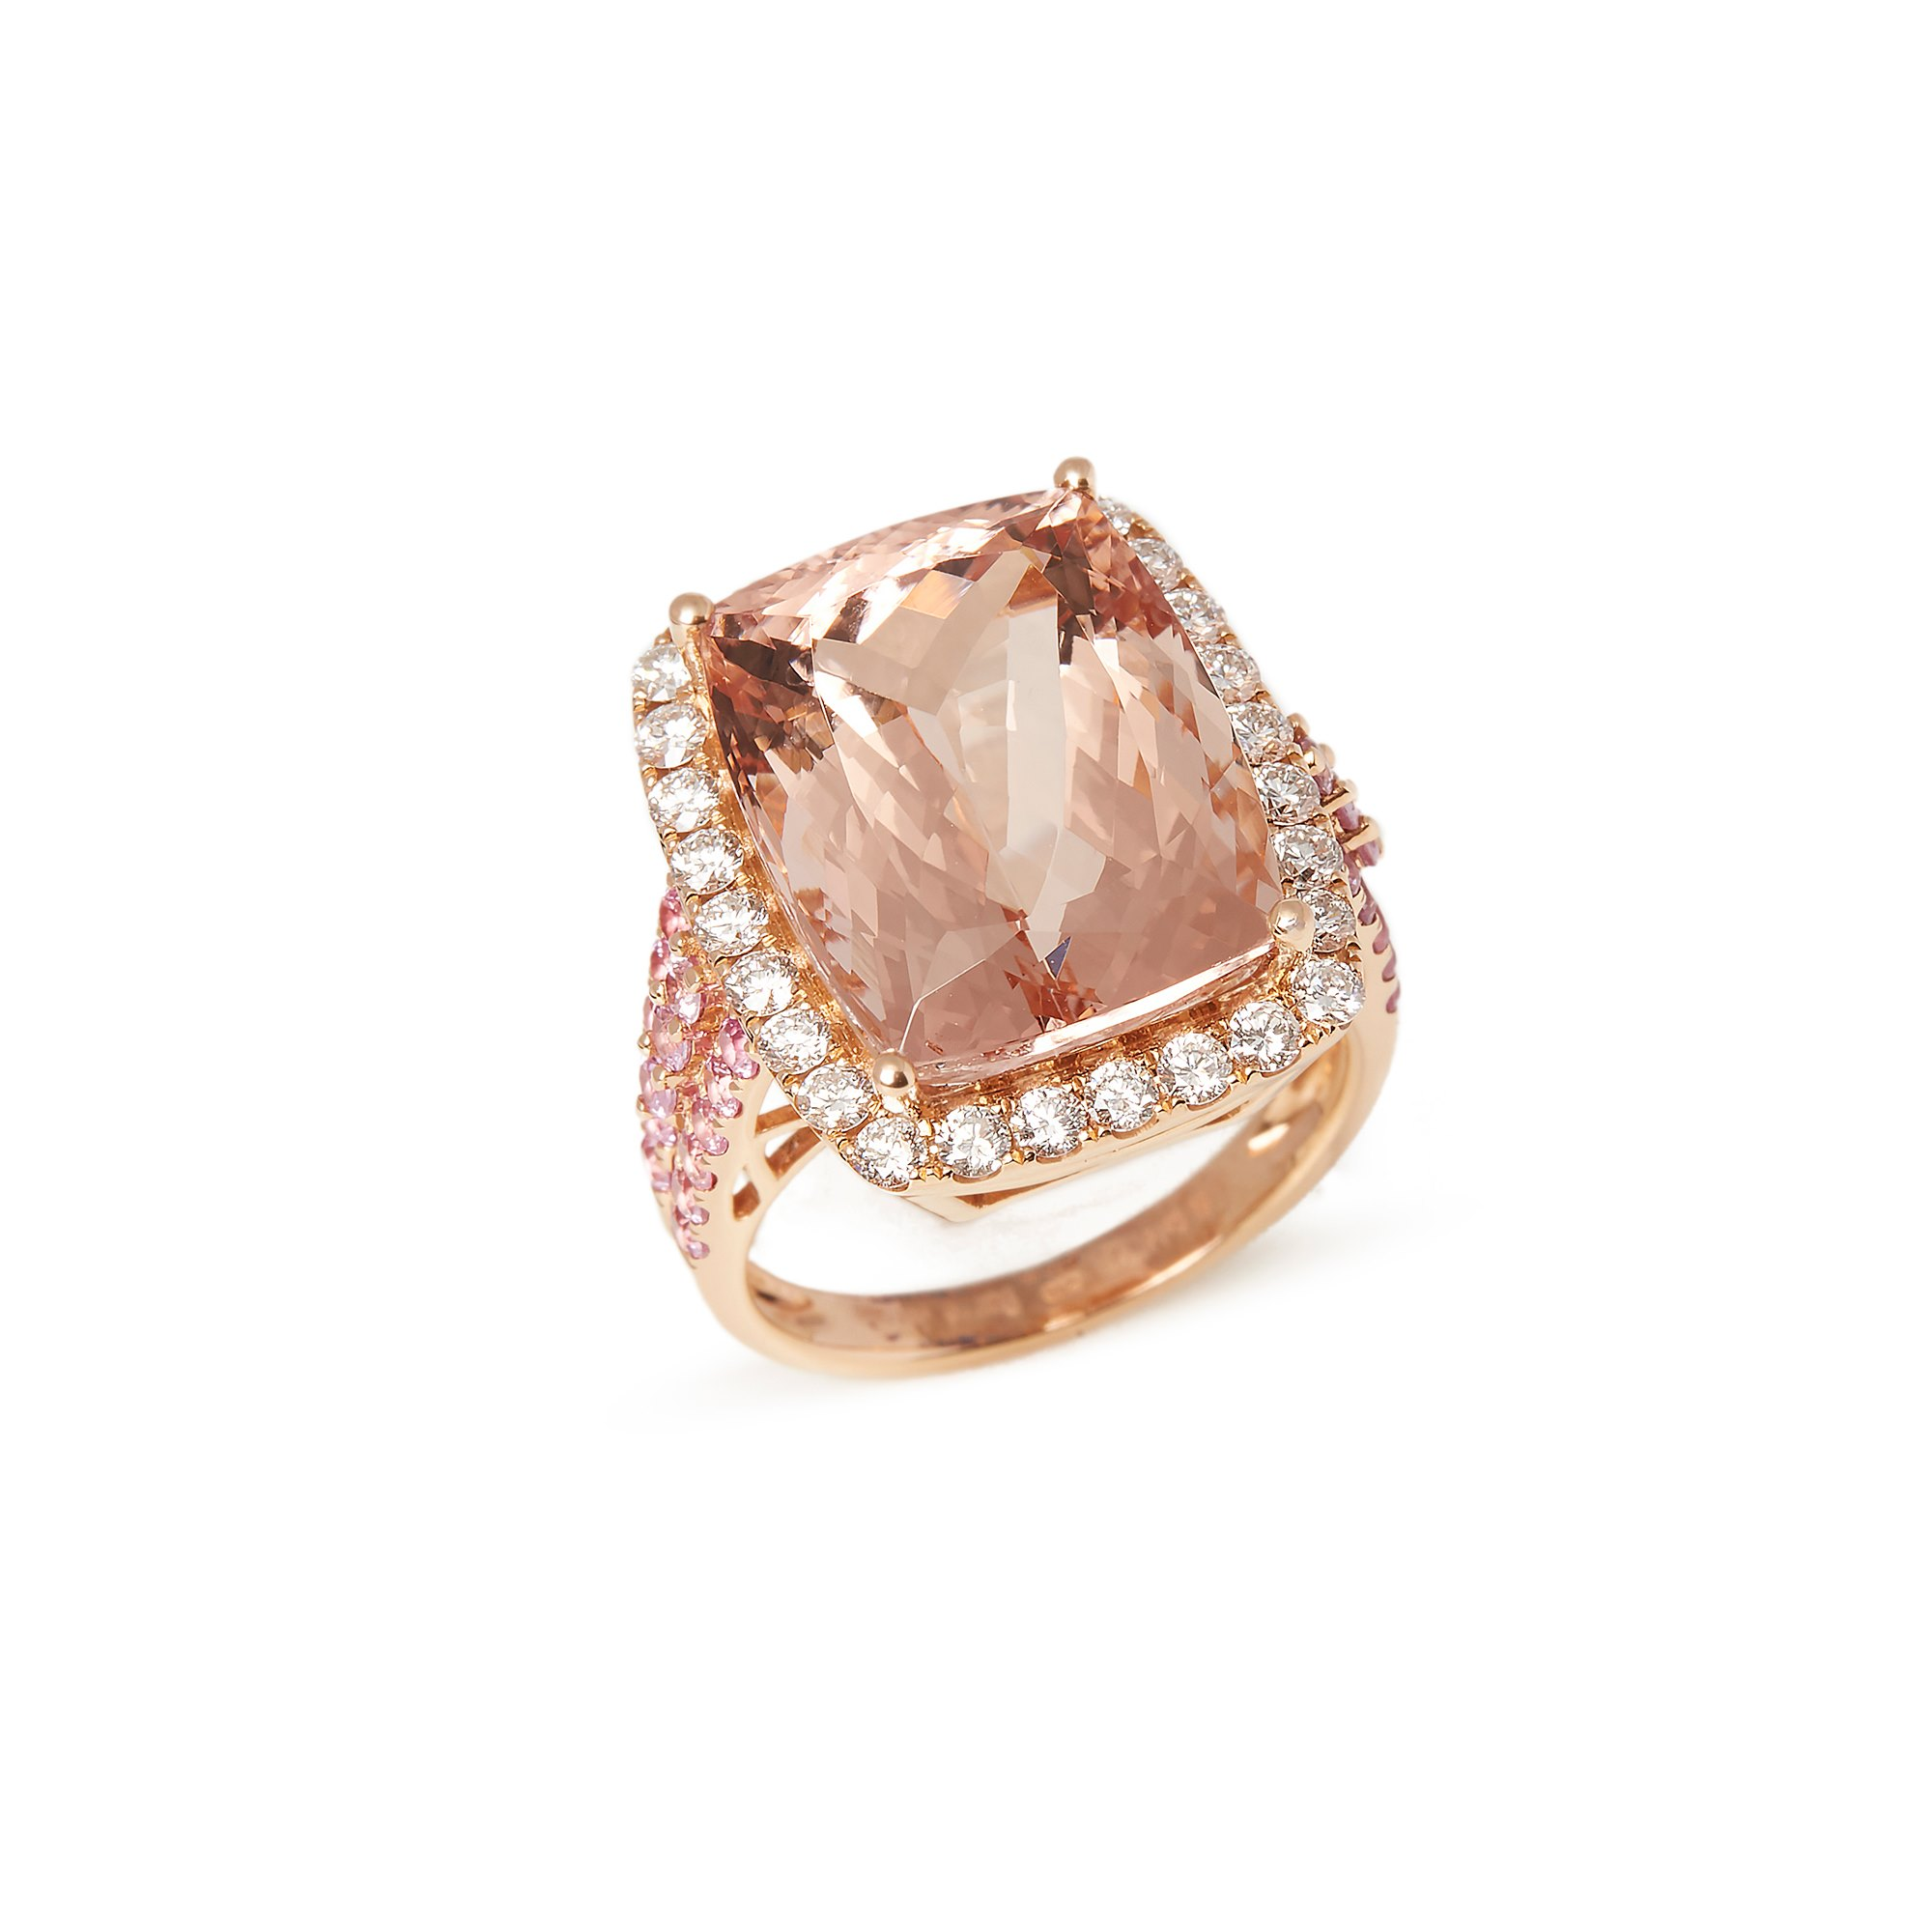 David Jerome Certified 14.99ct Cushion Cut Morganite, Pink Sapphire and Diamond 18ct gold Ring